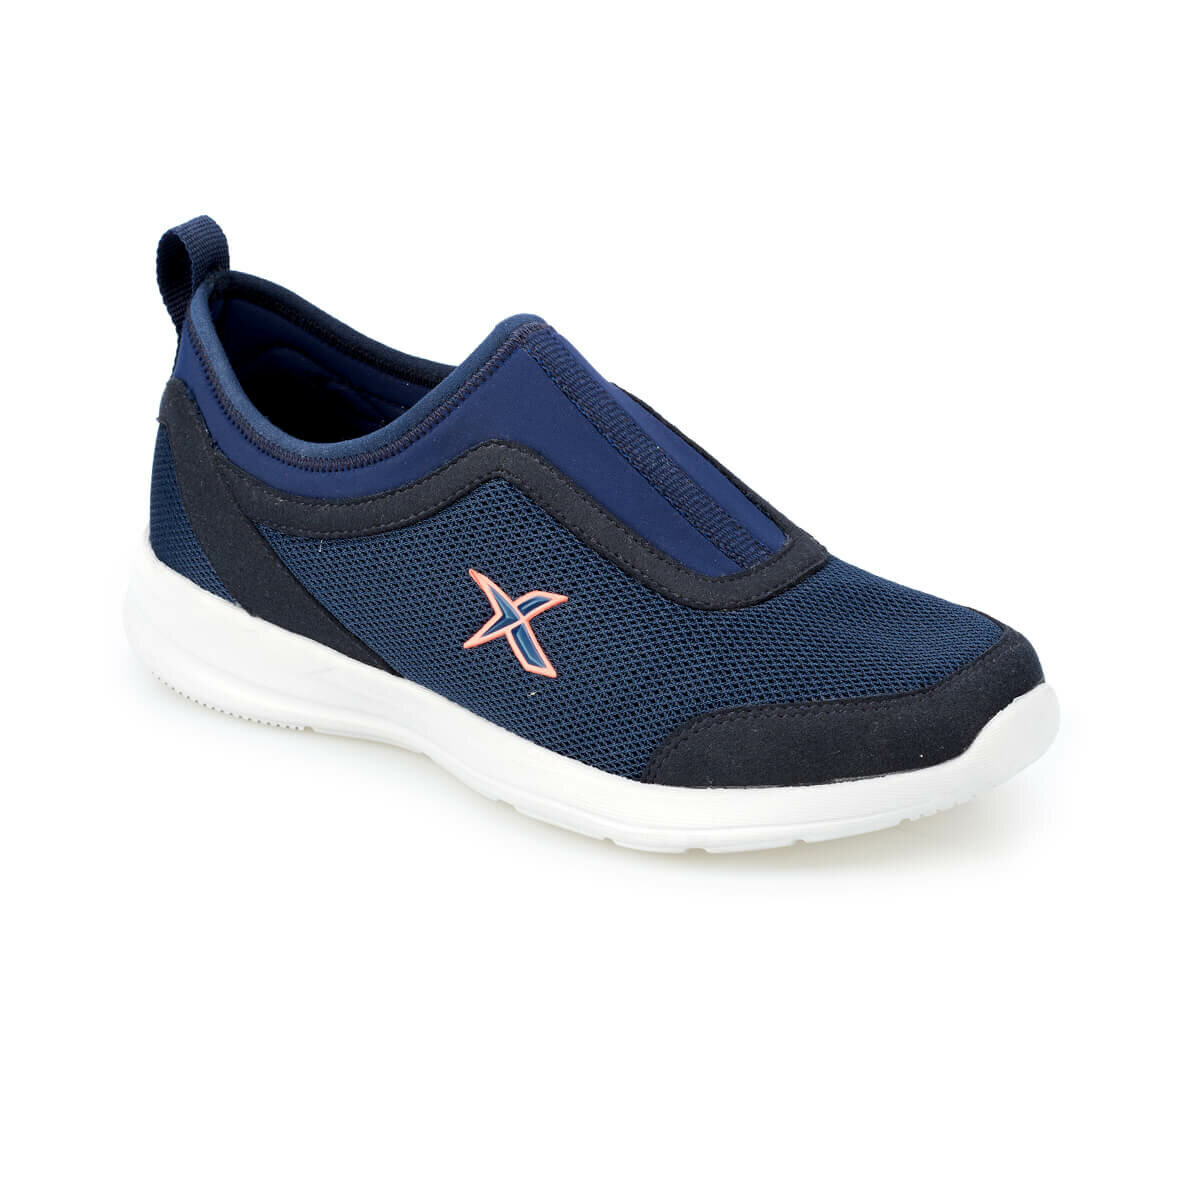 FLO ARON W Navy Blue Women 'S Comfort Shoes KINETIX